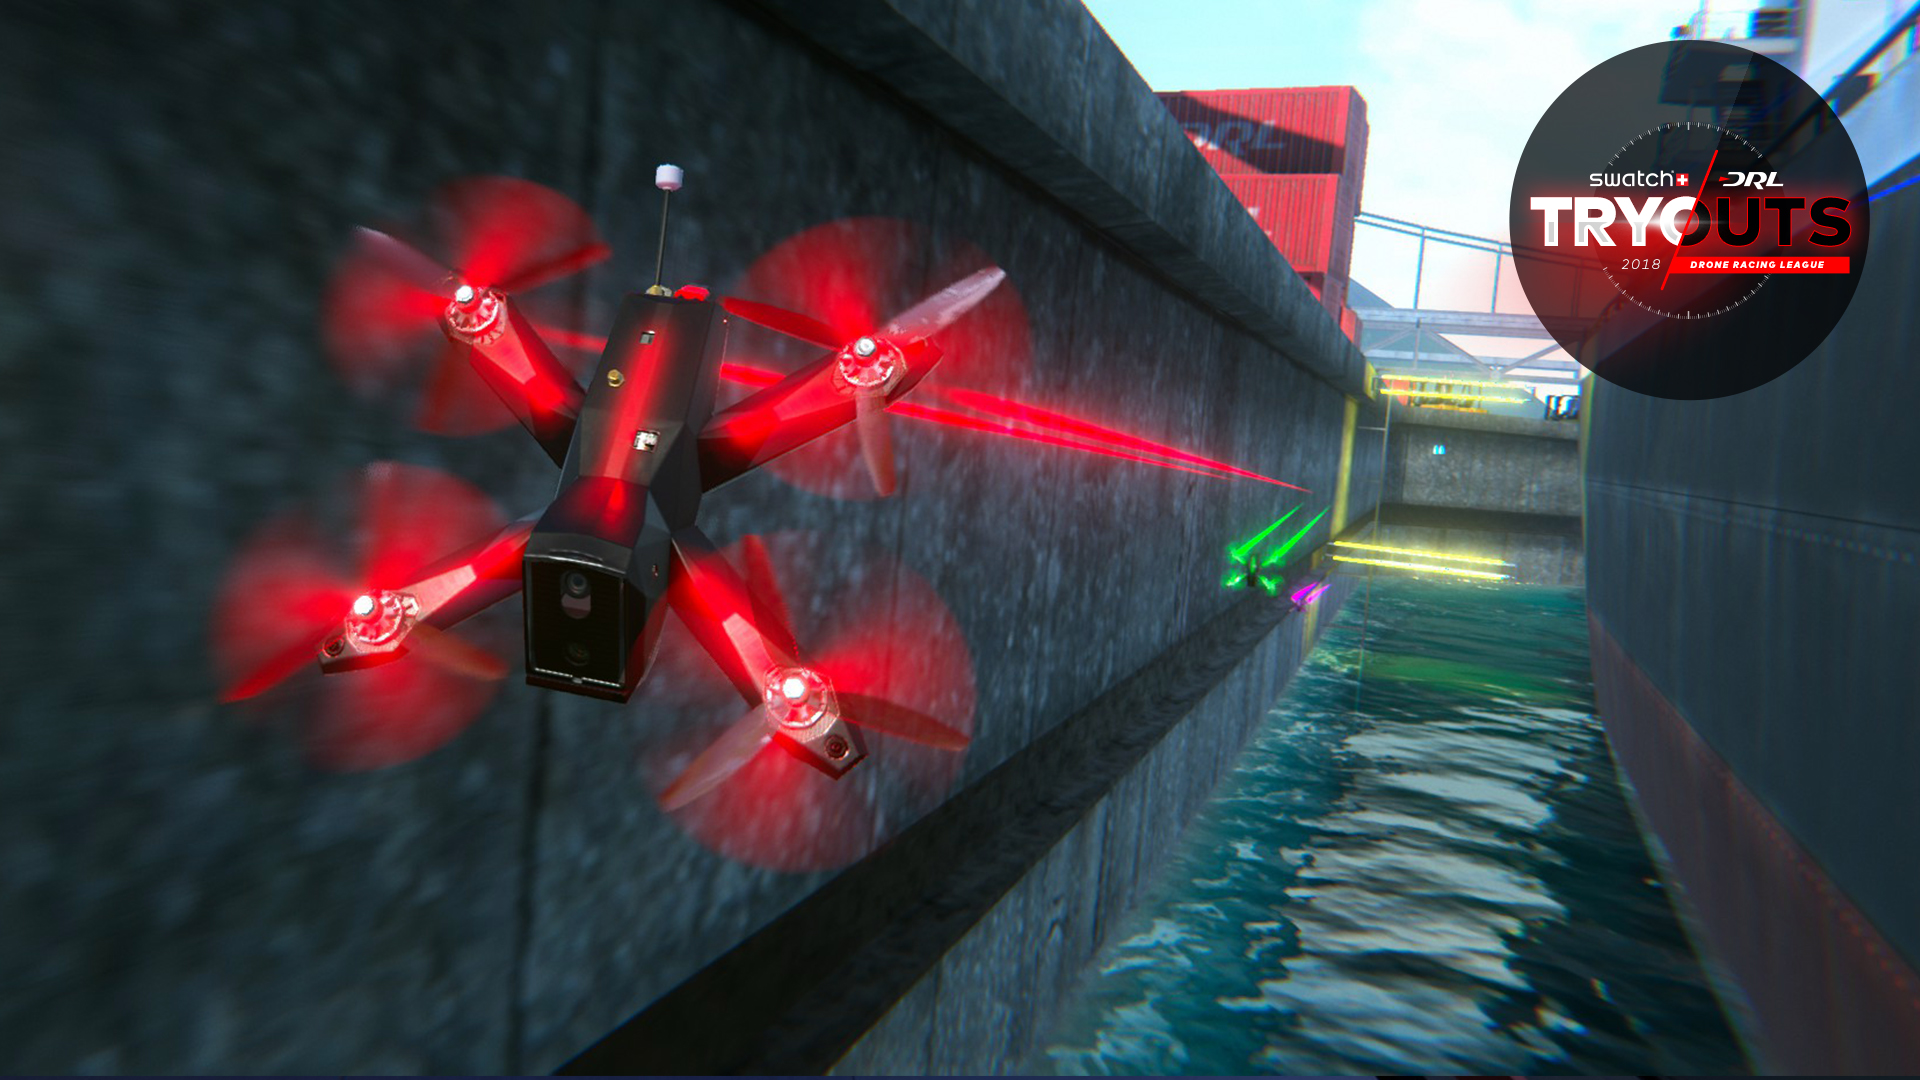 drone racing league simulator and tryouts